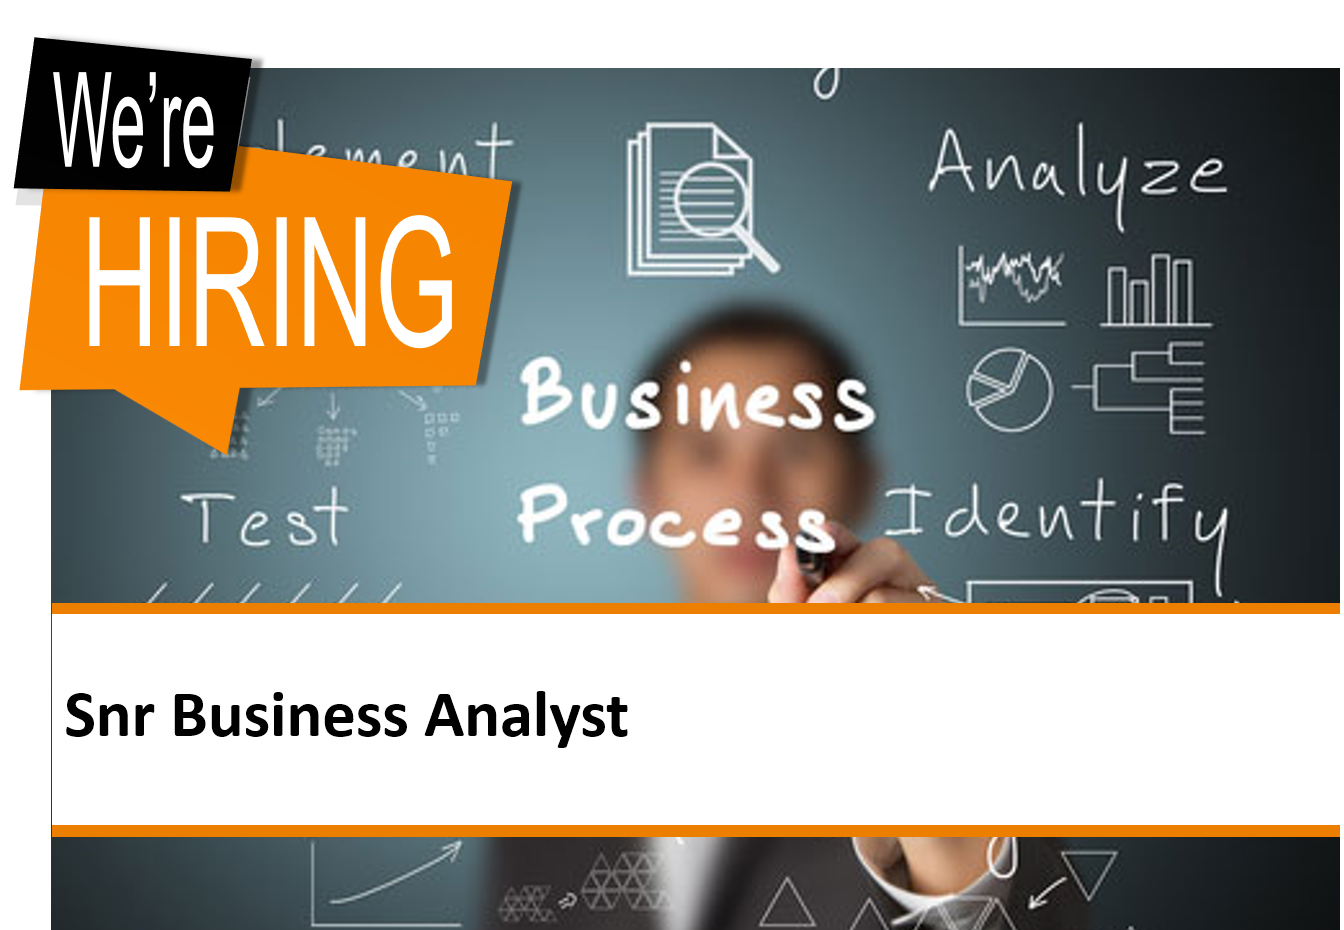 Senior Business Analyst Contract Digiterra Group